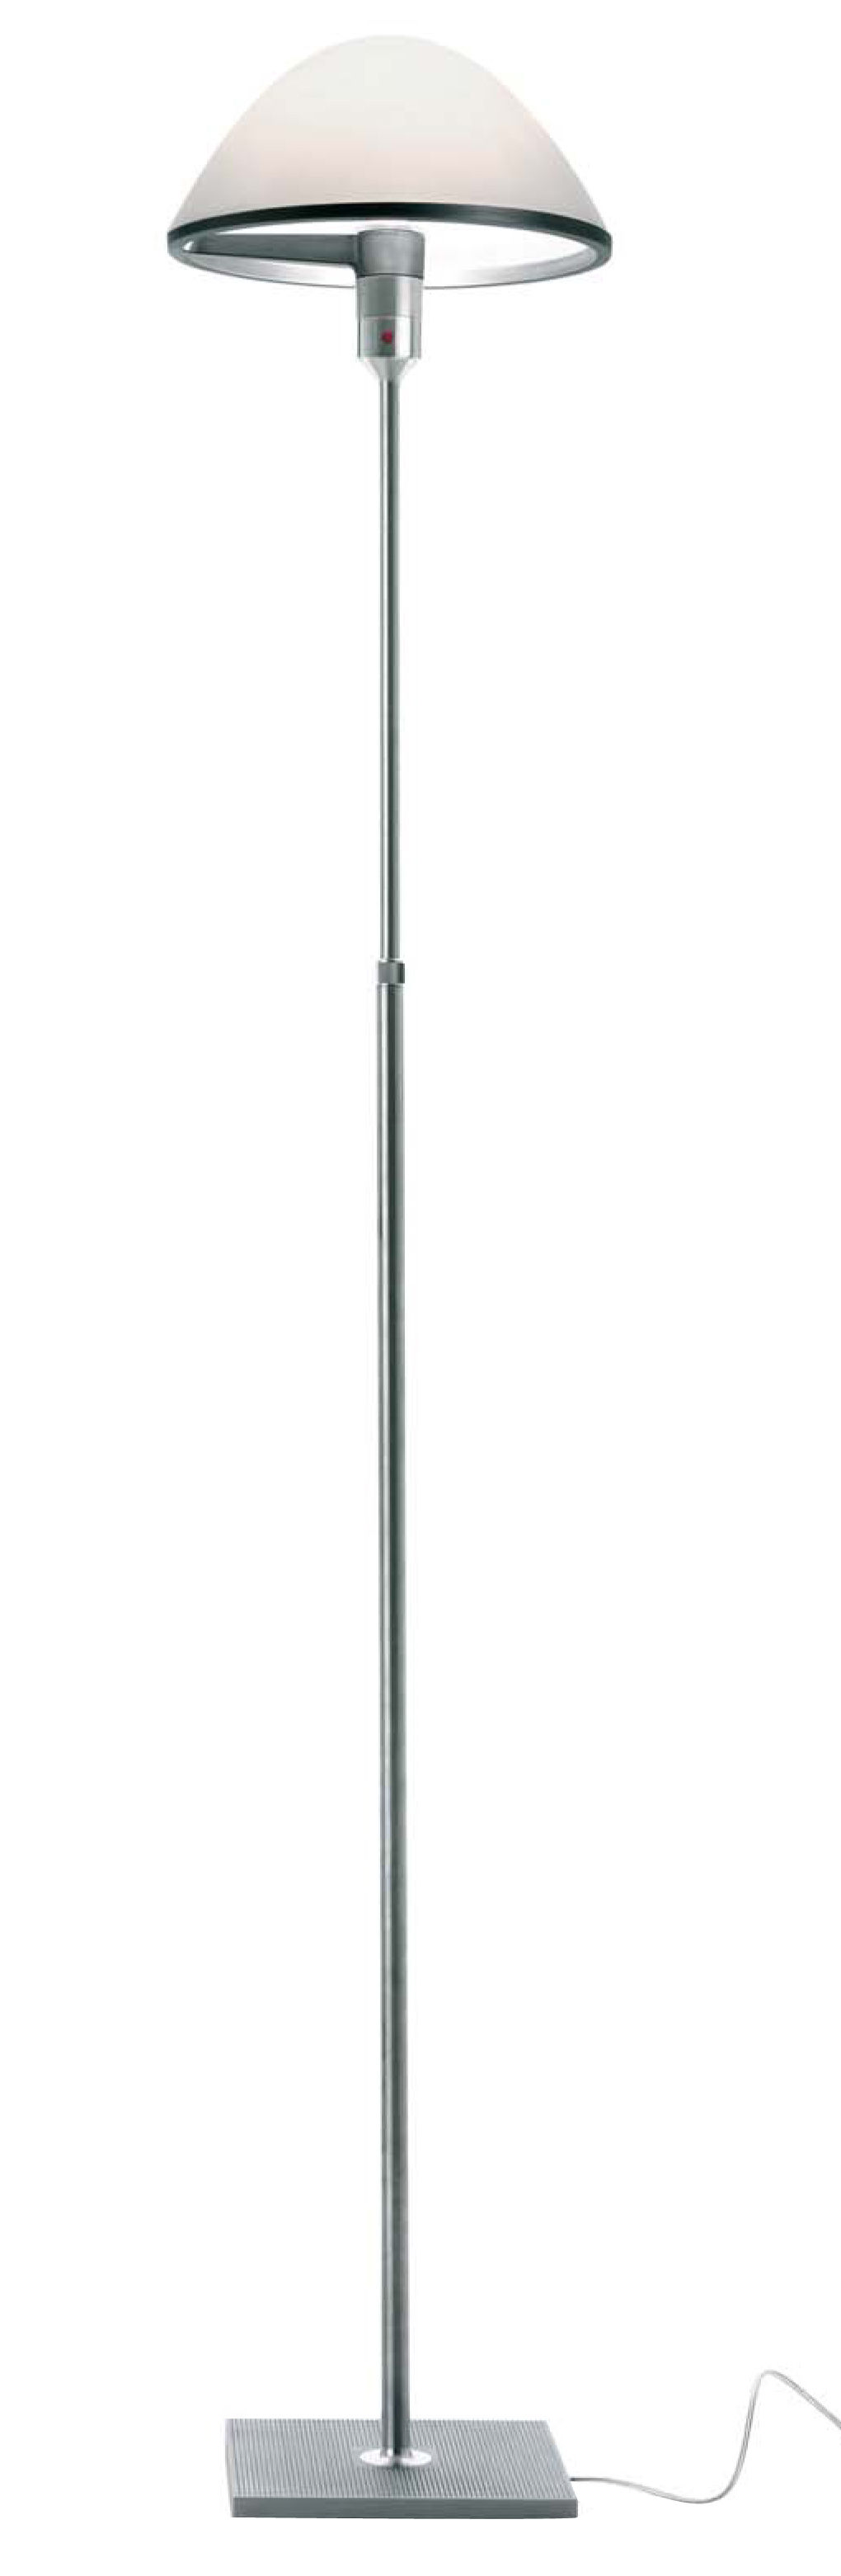 Lighting - Floor lamps - Miranda Floor lamp by Luceplan - Aluminium - White - Aluminium